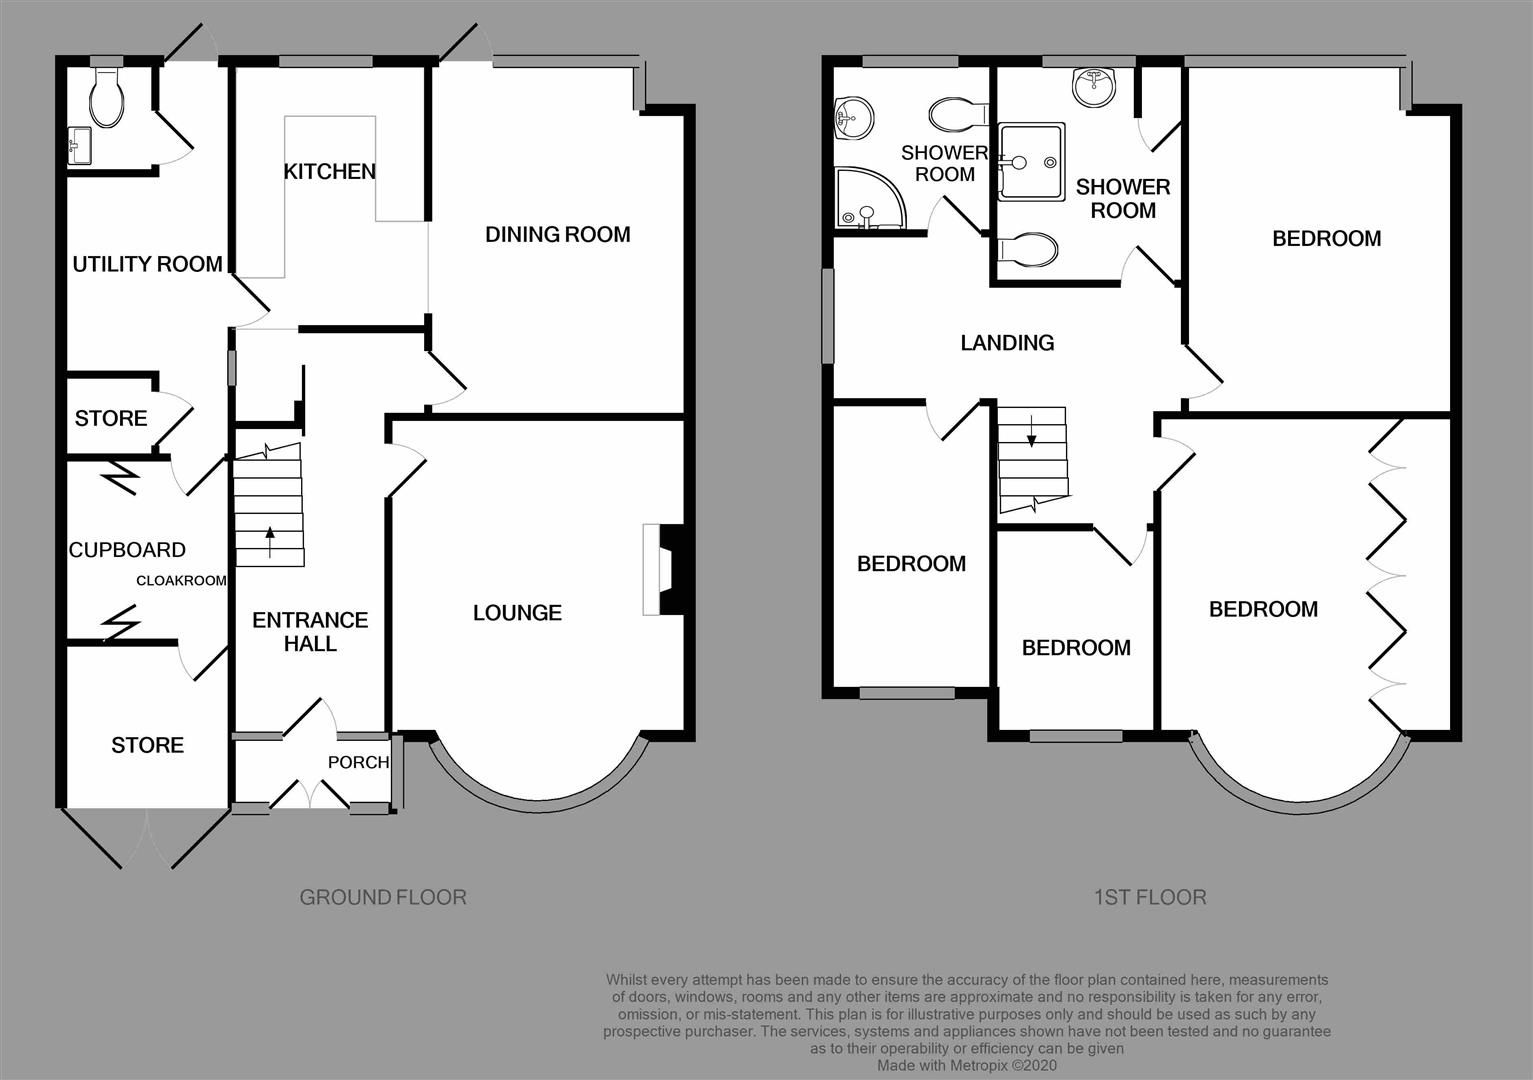 4 bed semi-detached for sale - Property Floorplan